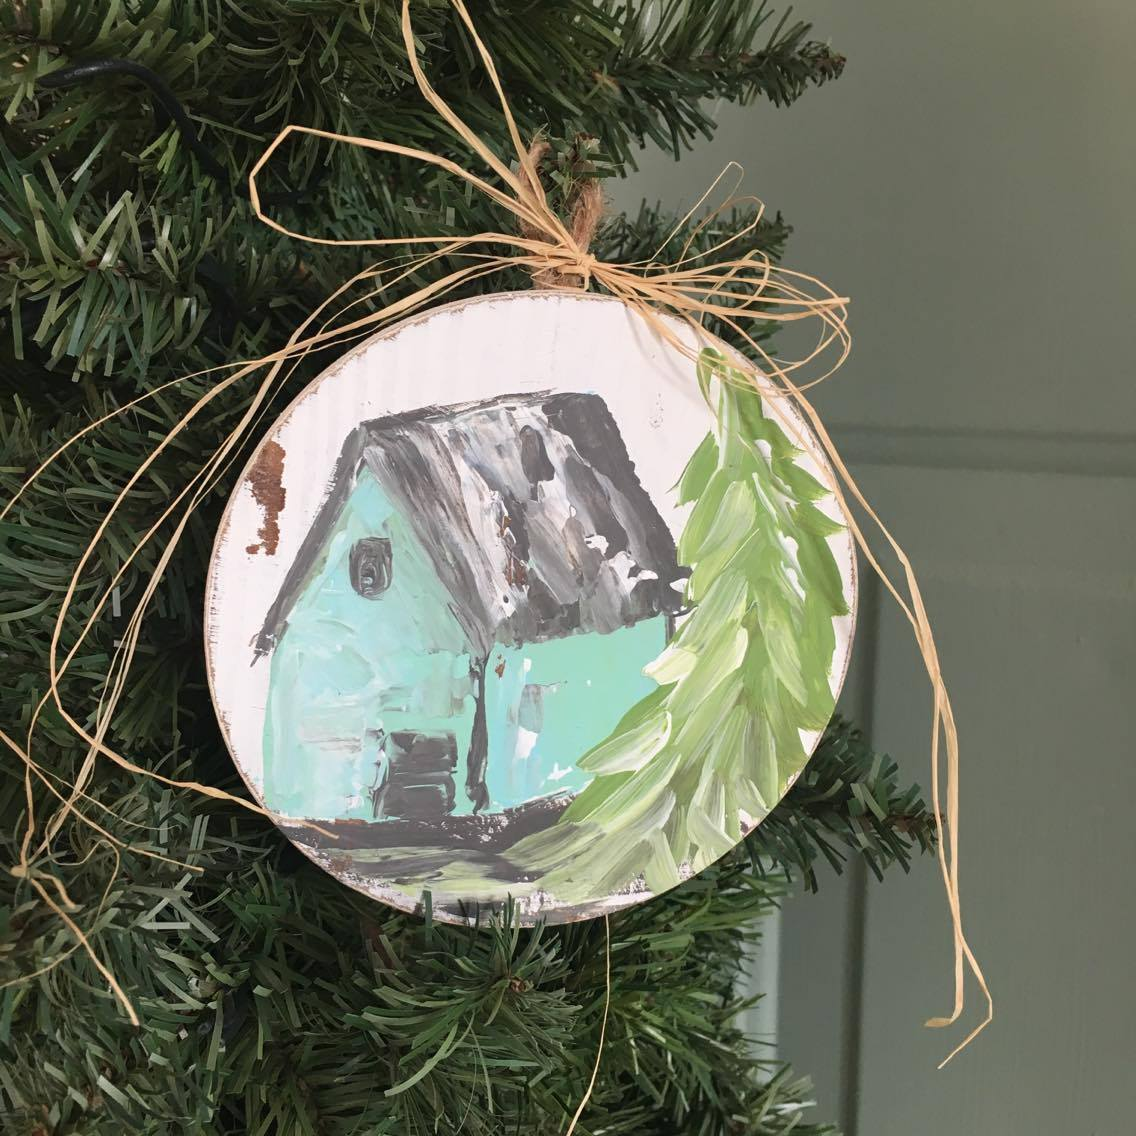 This turquoise barn will be perfect for your shabby chic Christmas tree! Grab this one of a kind ornament exclusively at The Little Bluebird Gallery | Art by Amanda Hilburn #barnornament #barn #turquoisebarn #shabbychic